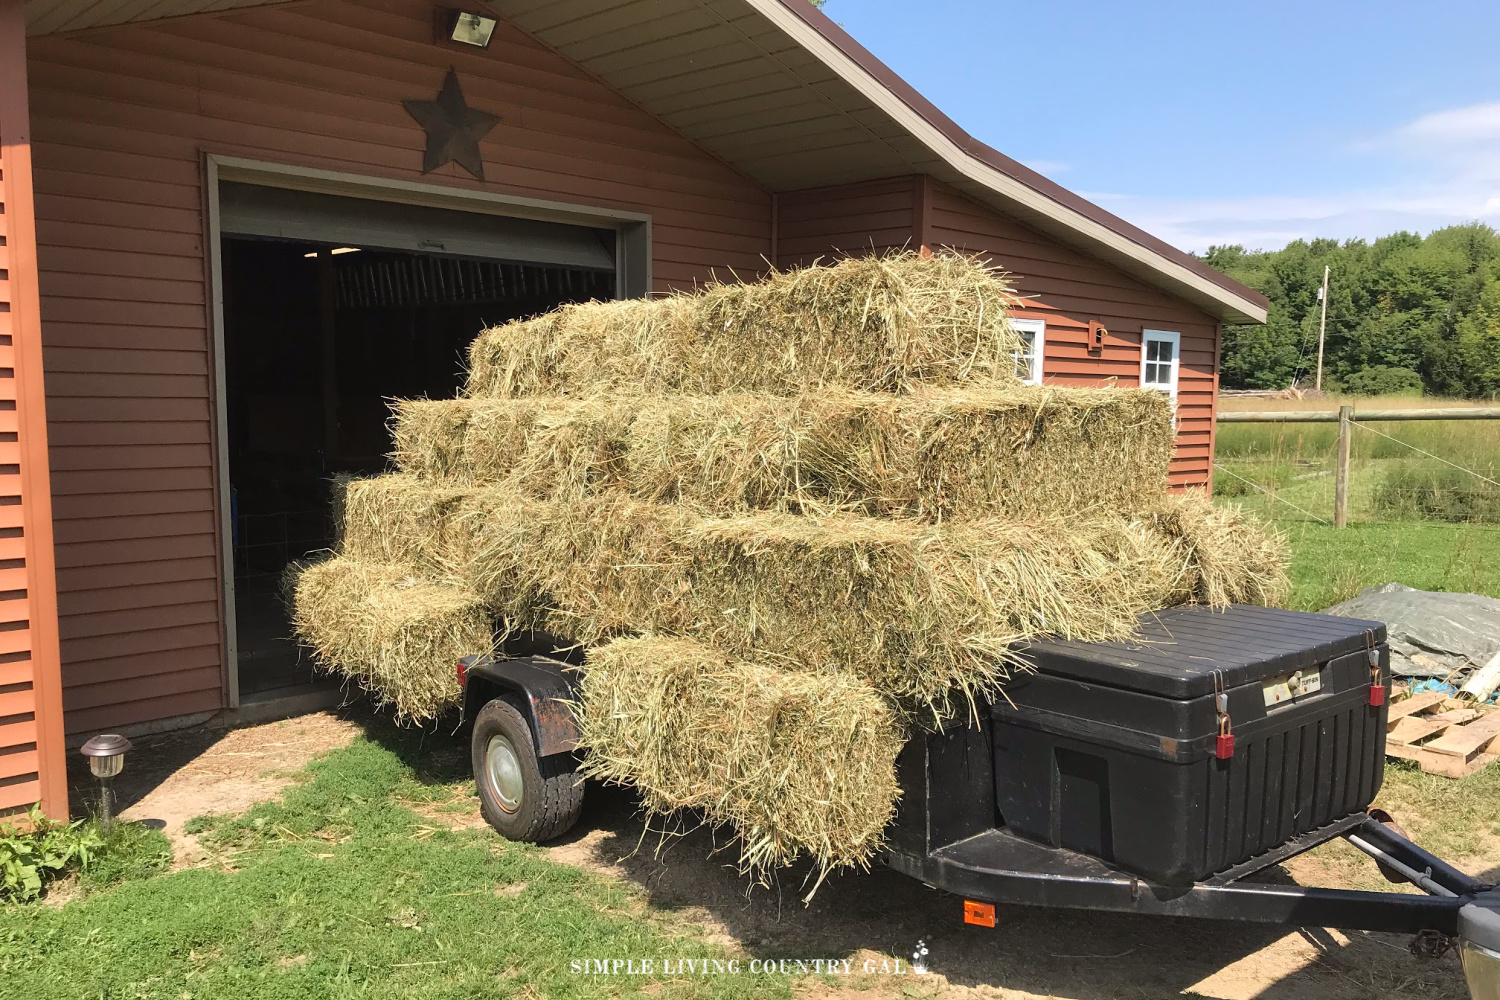 goat hay going into the barn